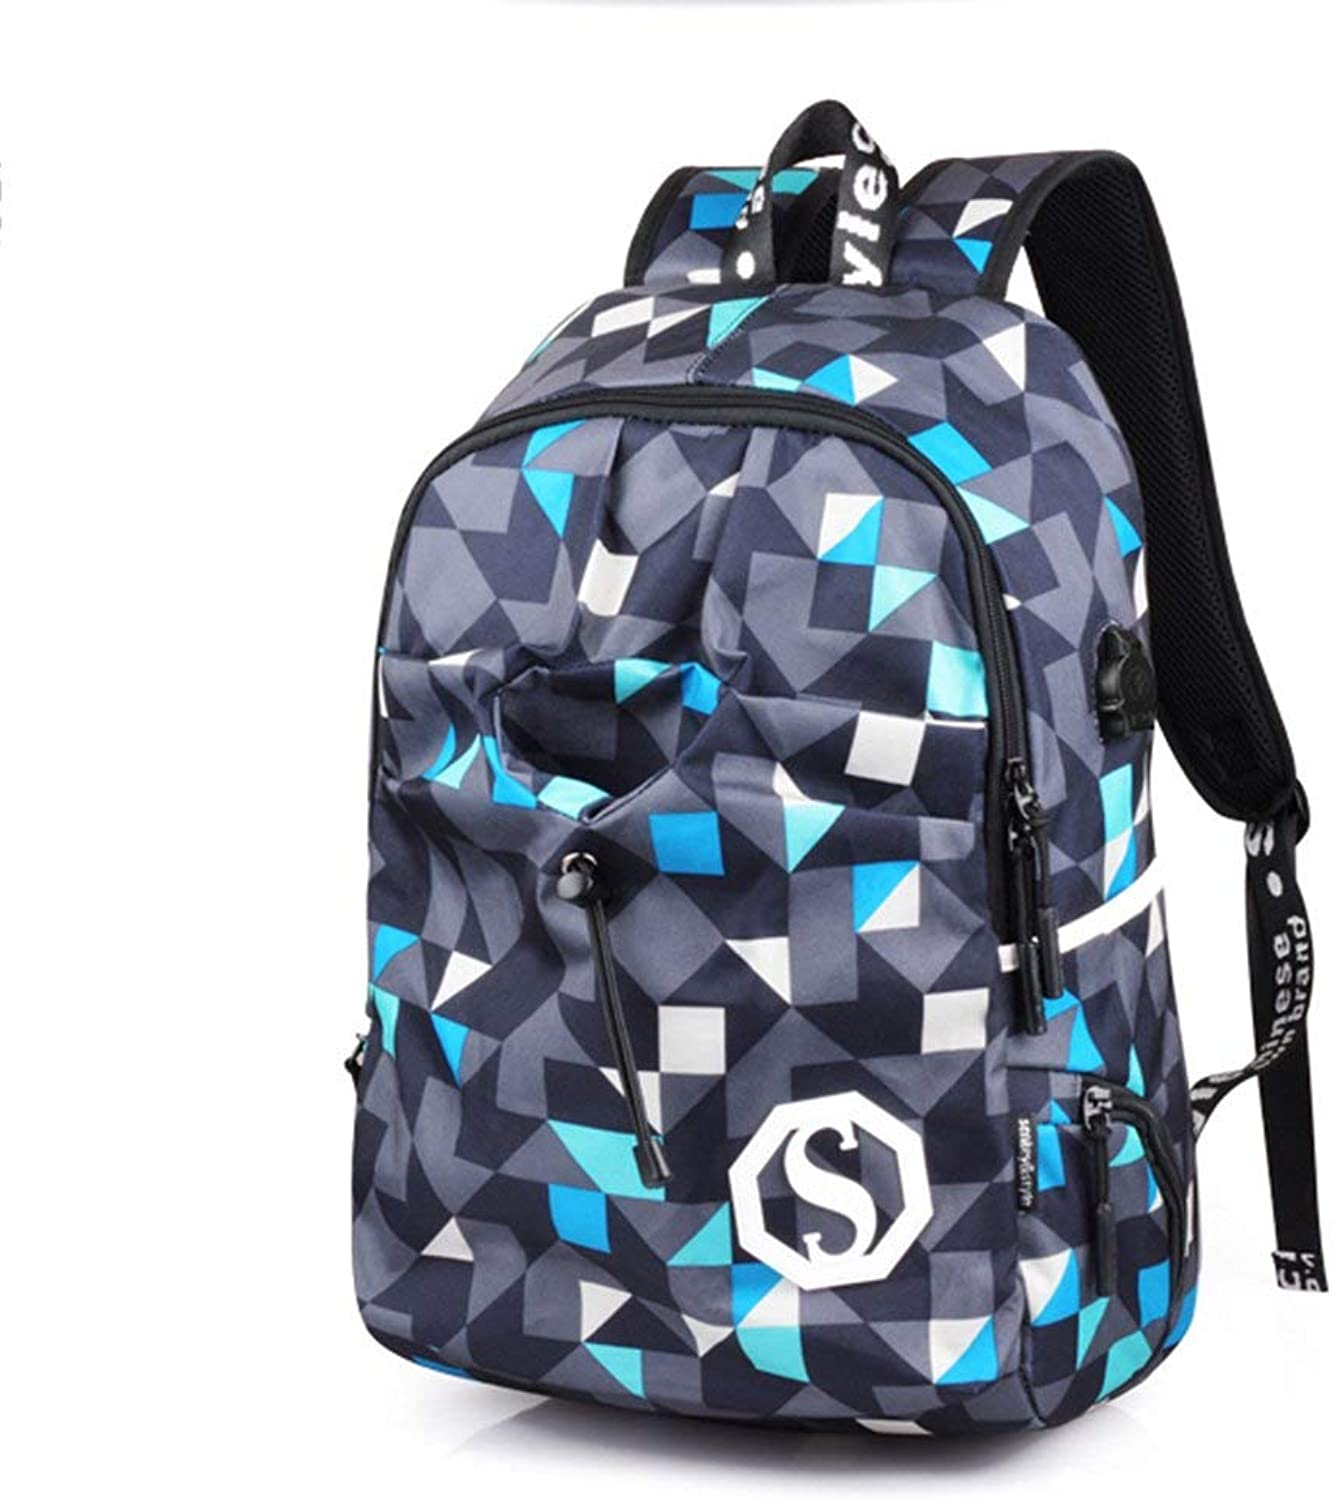 Men's Fashion Backpack Casual Daypacks Backpack Laptop Bag Casual Backpack Student Bag Travel Bag Fashion (color   blueee Plaid, Size   M)